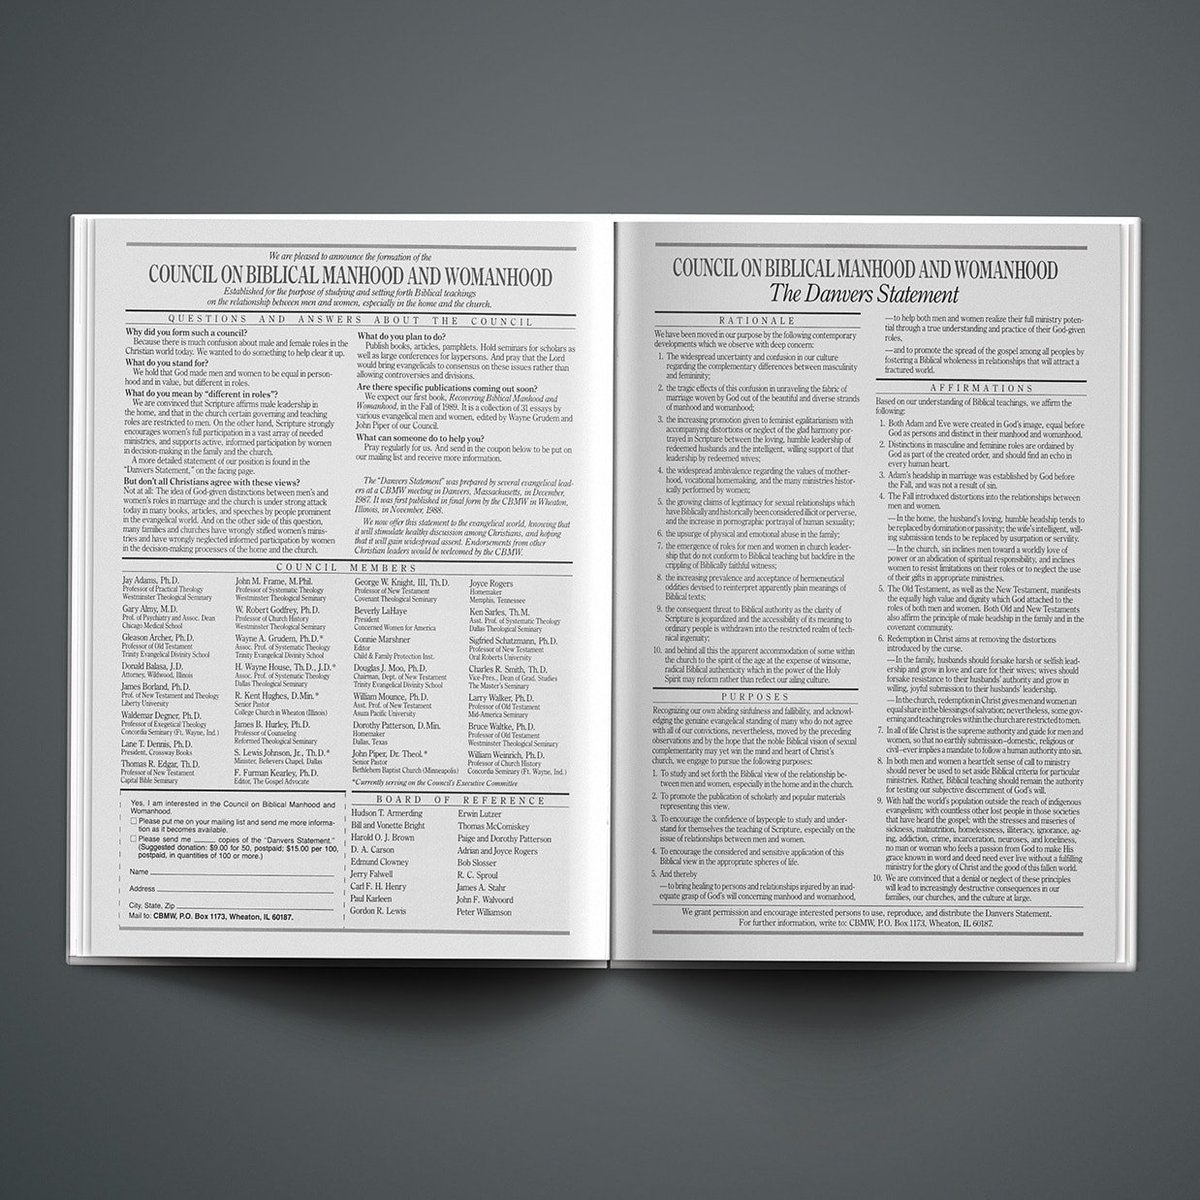 Ad placed in Christianity Today JAN 13, 1989 Statement on Biblical Manhood and Womanhood called The Danvers Statement. This manifesto in part was a backlash against the rise of evangelical feminism. #Jesusfeminist  #BiblicalWomanhood #Christianfeminism  #Danversstatementpic.twitter.com/6o0gxOB8z5